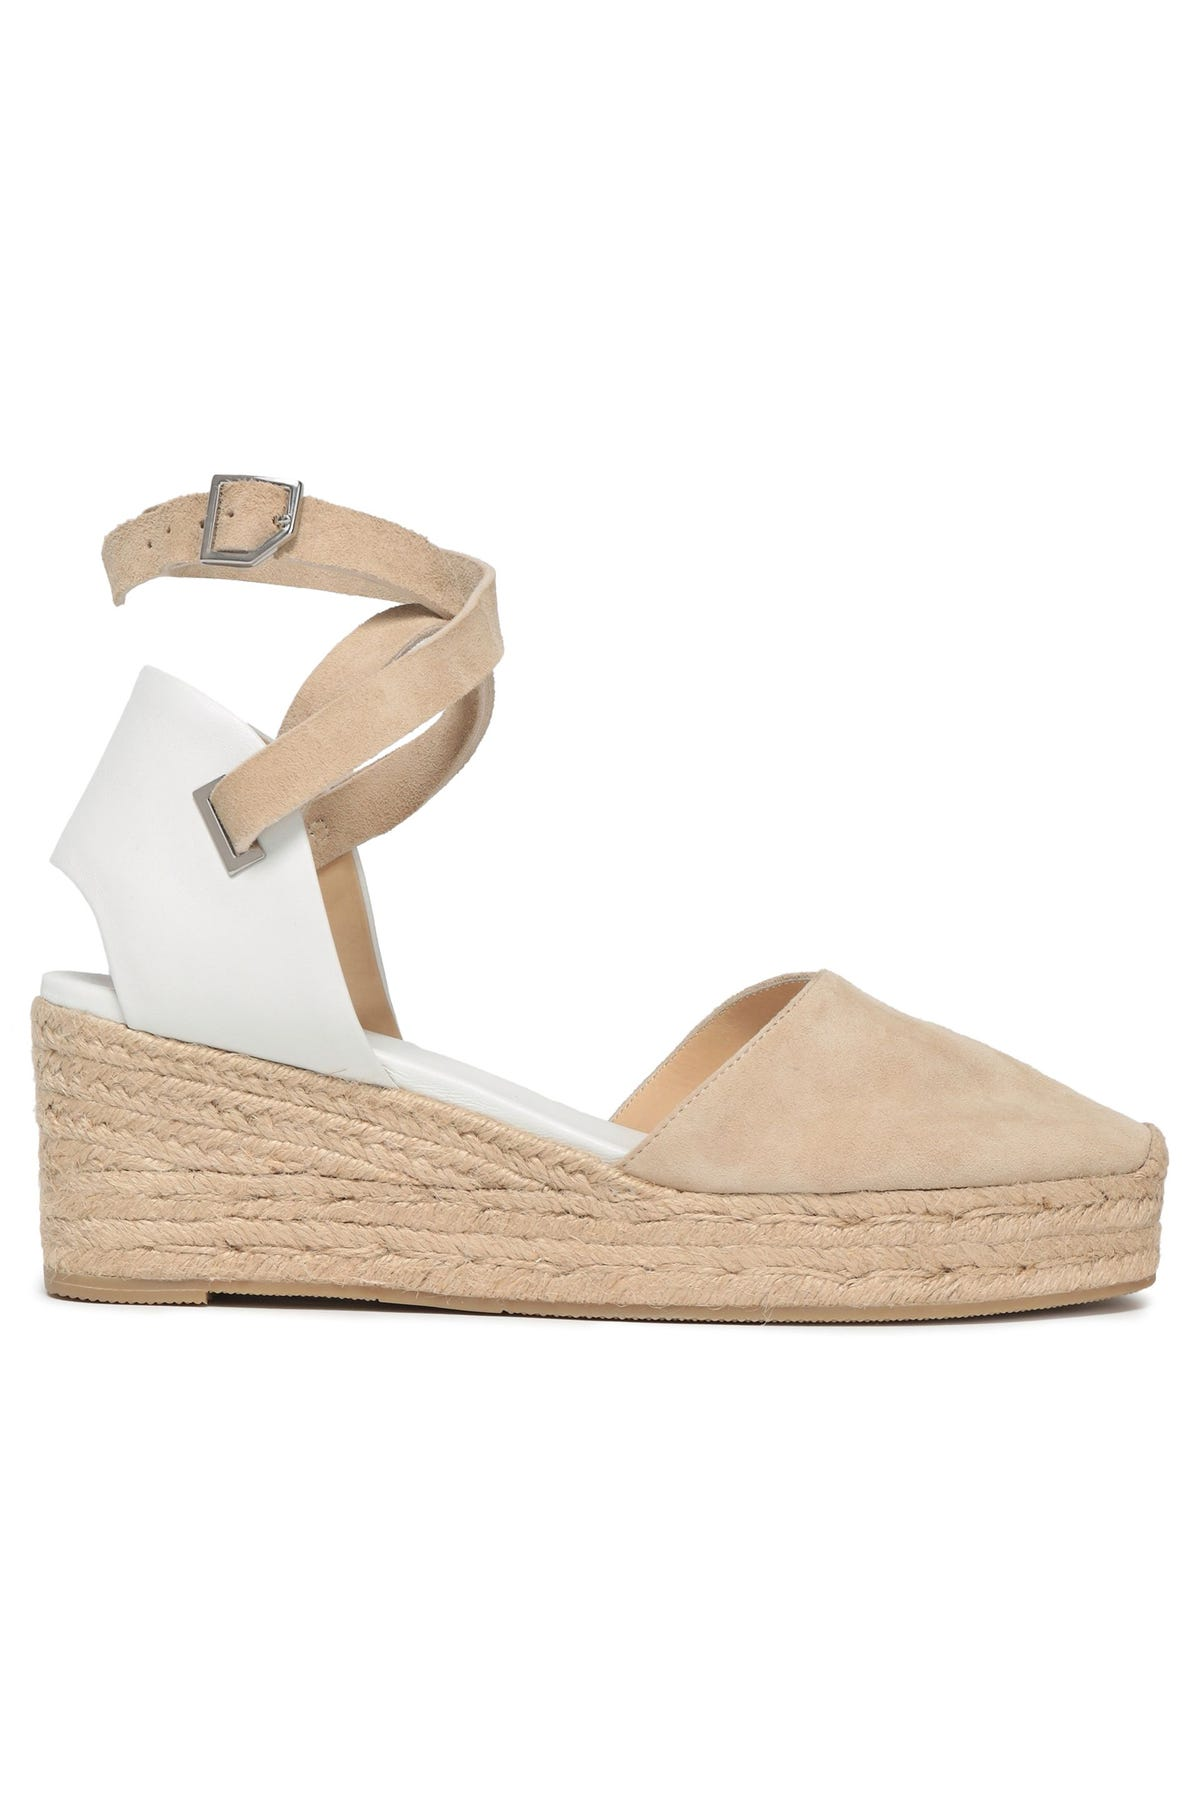 Kate Sale Outnet The At Wedges On Are Middleton's 5LAjR4